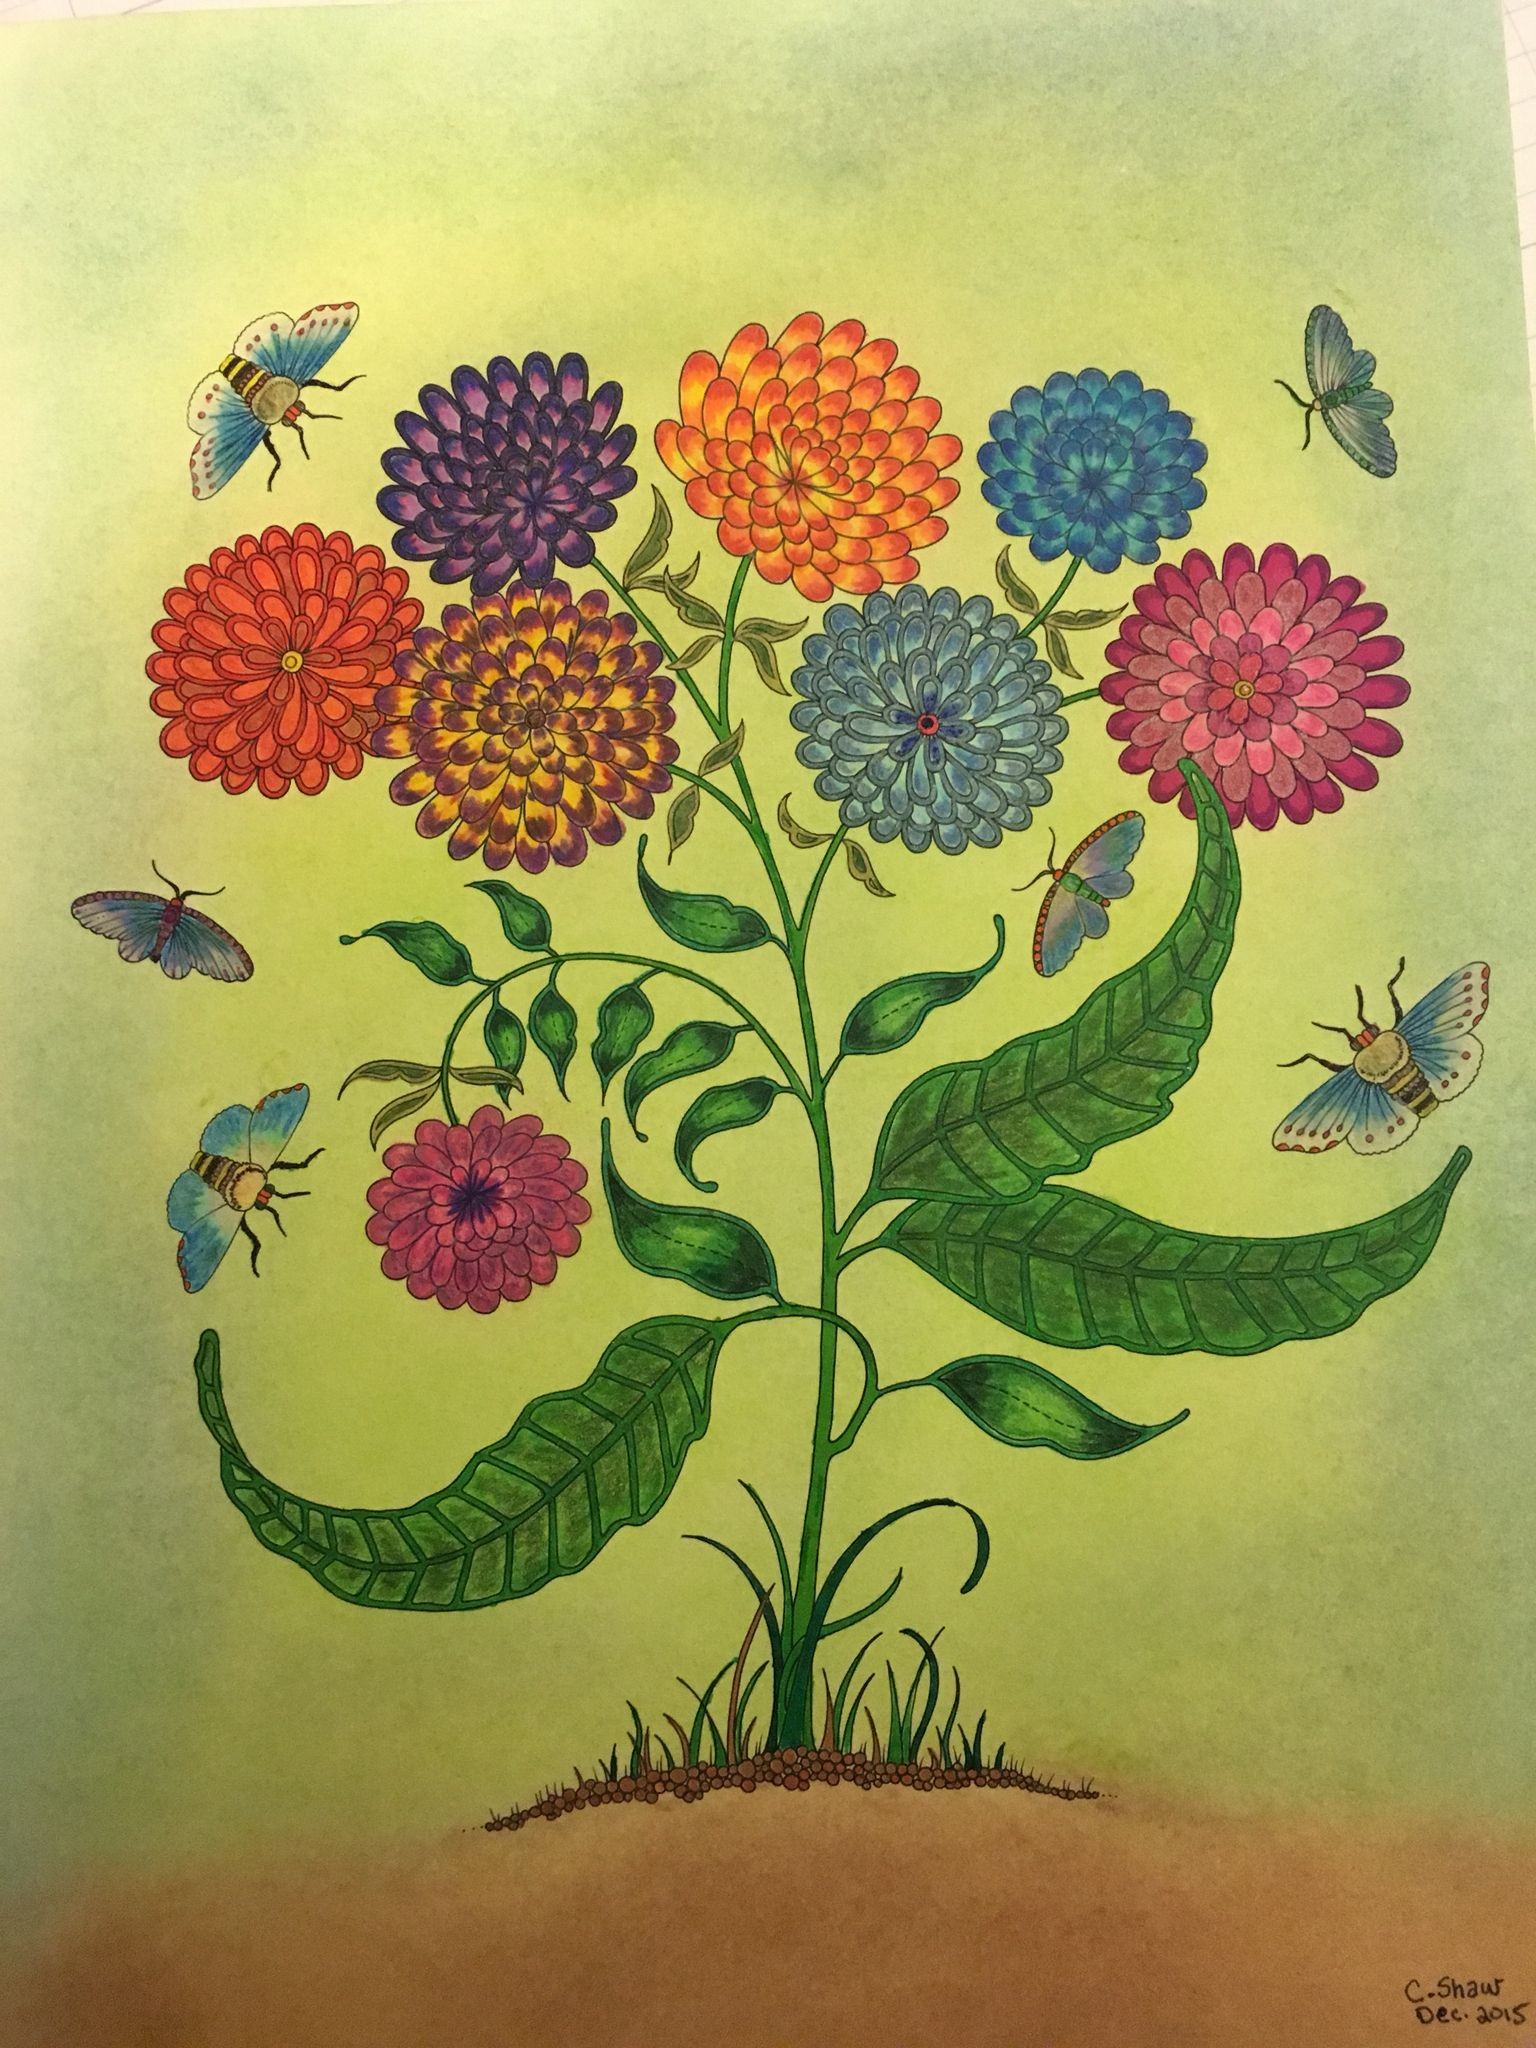 My First Project From Johanna Basfords Artist Edition Secret Garden Coloring Book